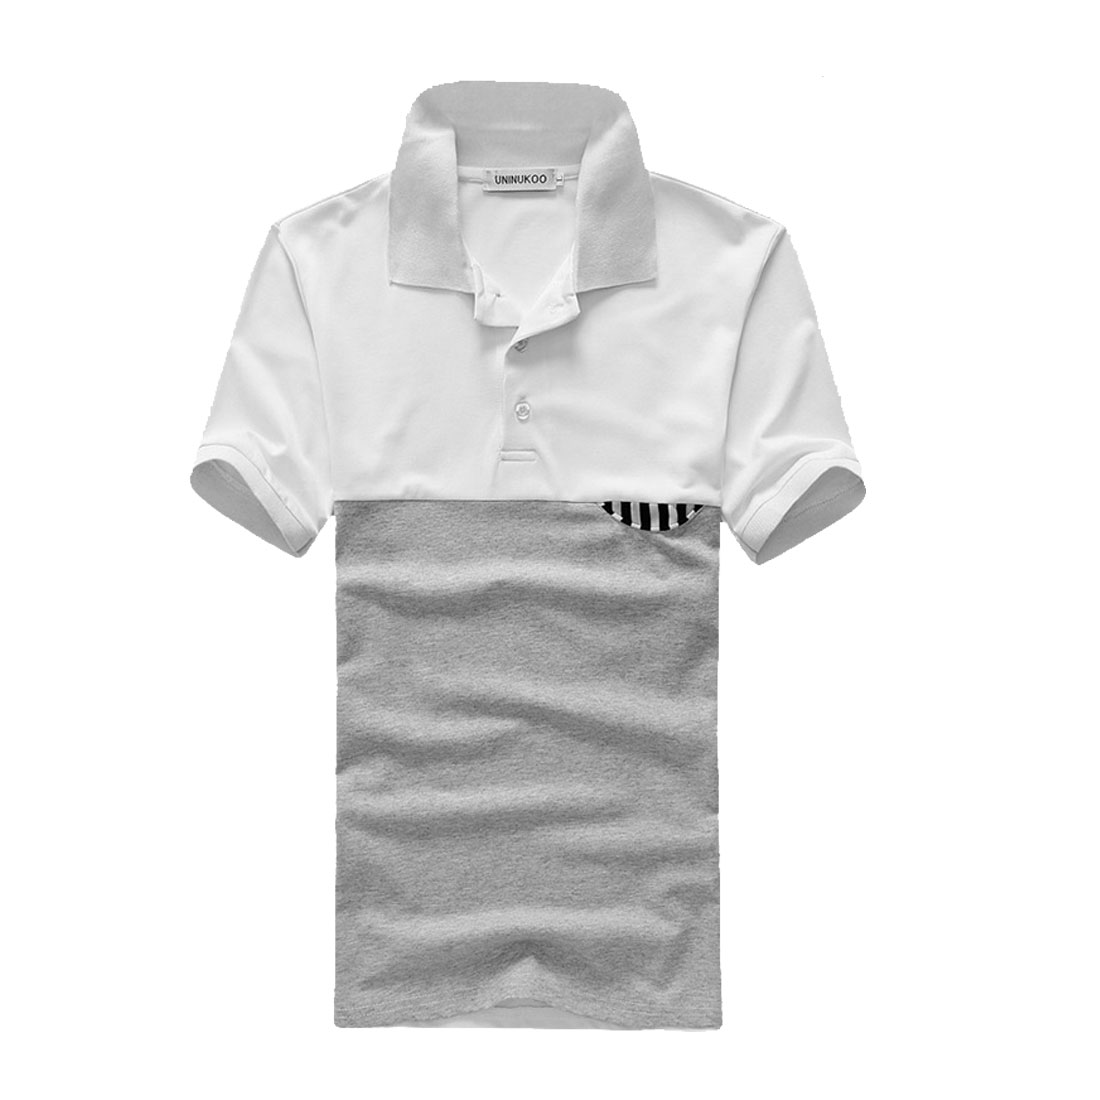 Mens Short Sleeve Contrast Color Splice Light Gray White Casual Polo Shirt M